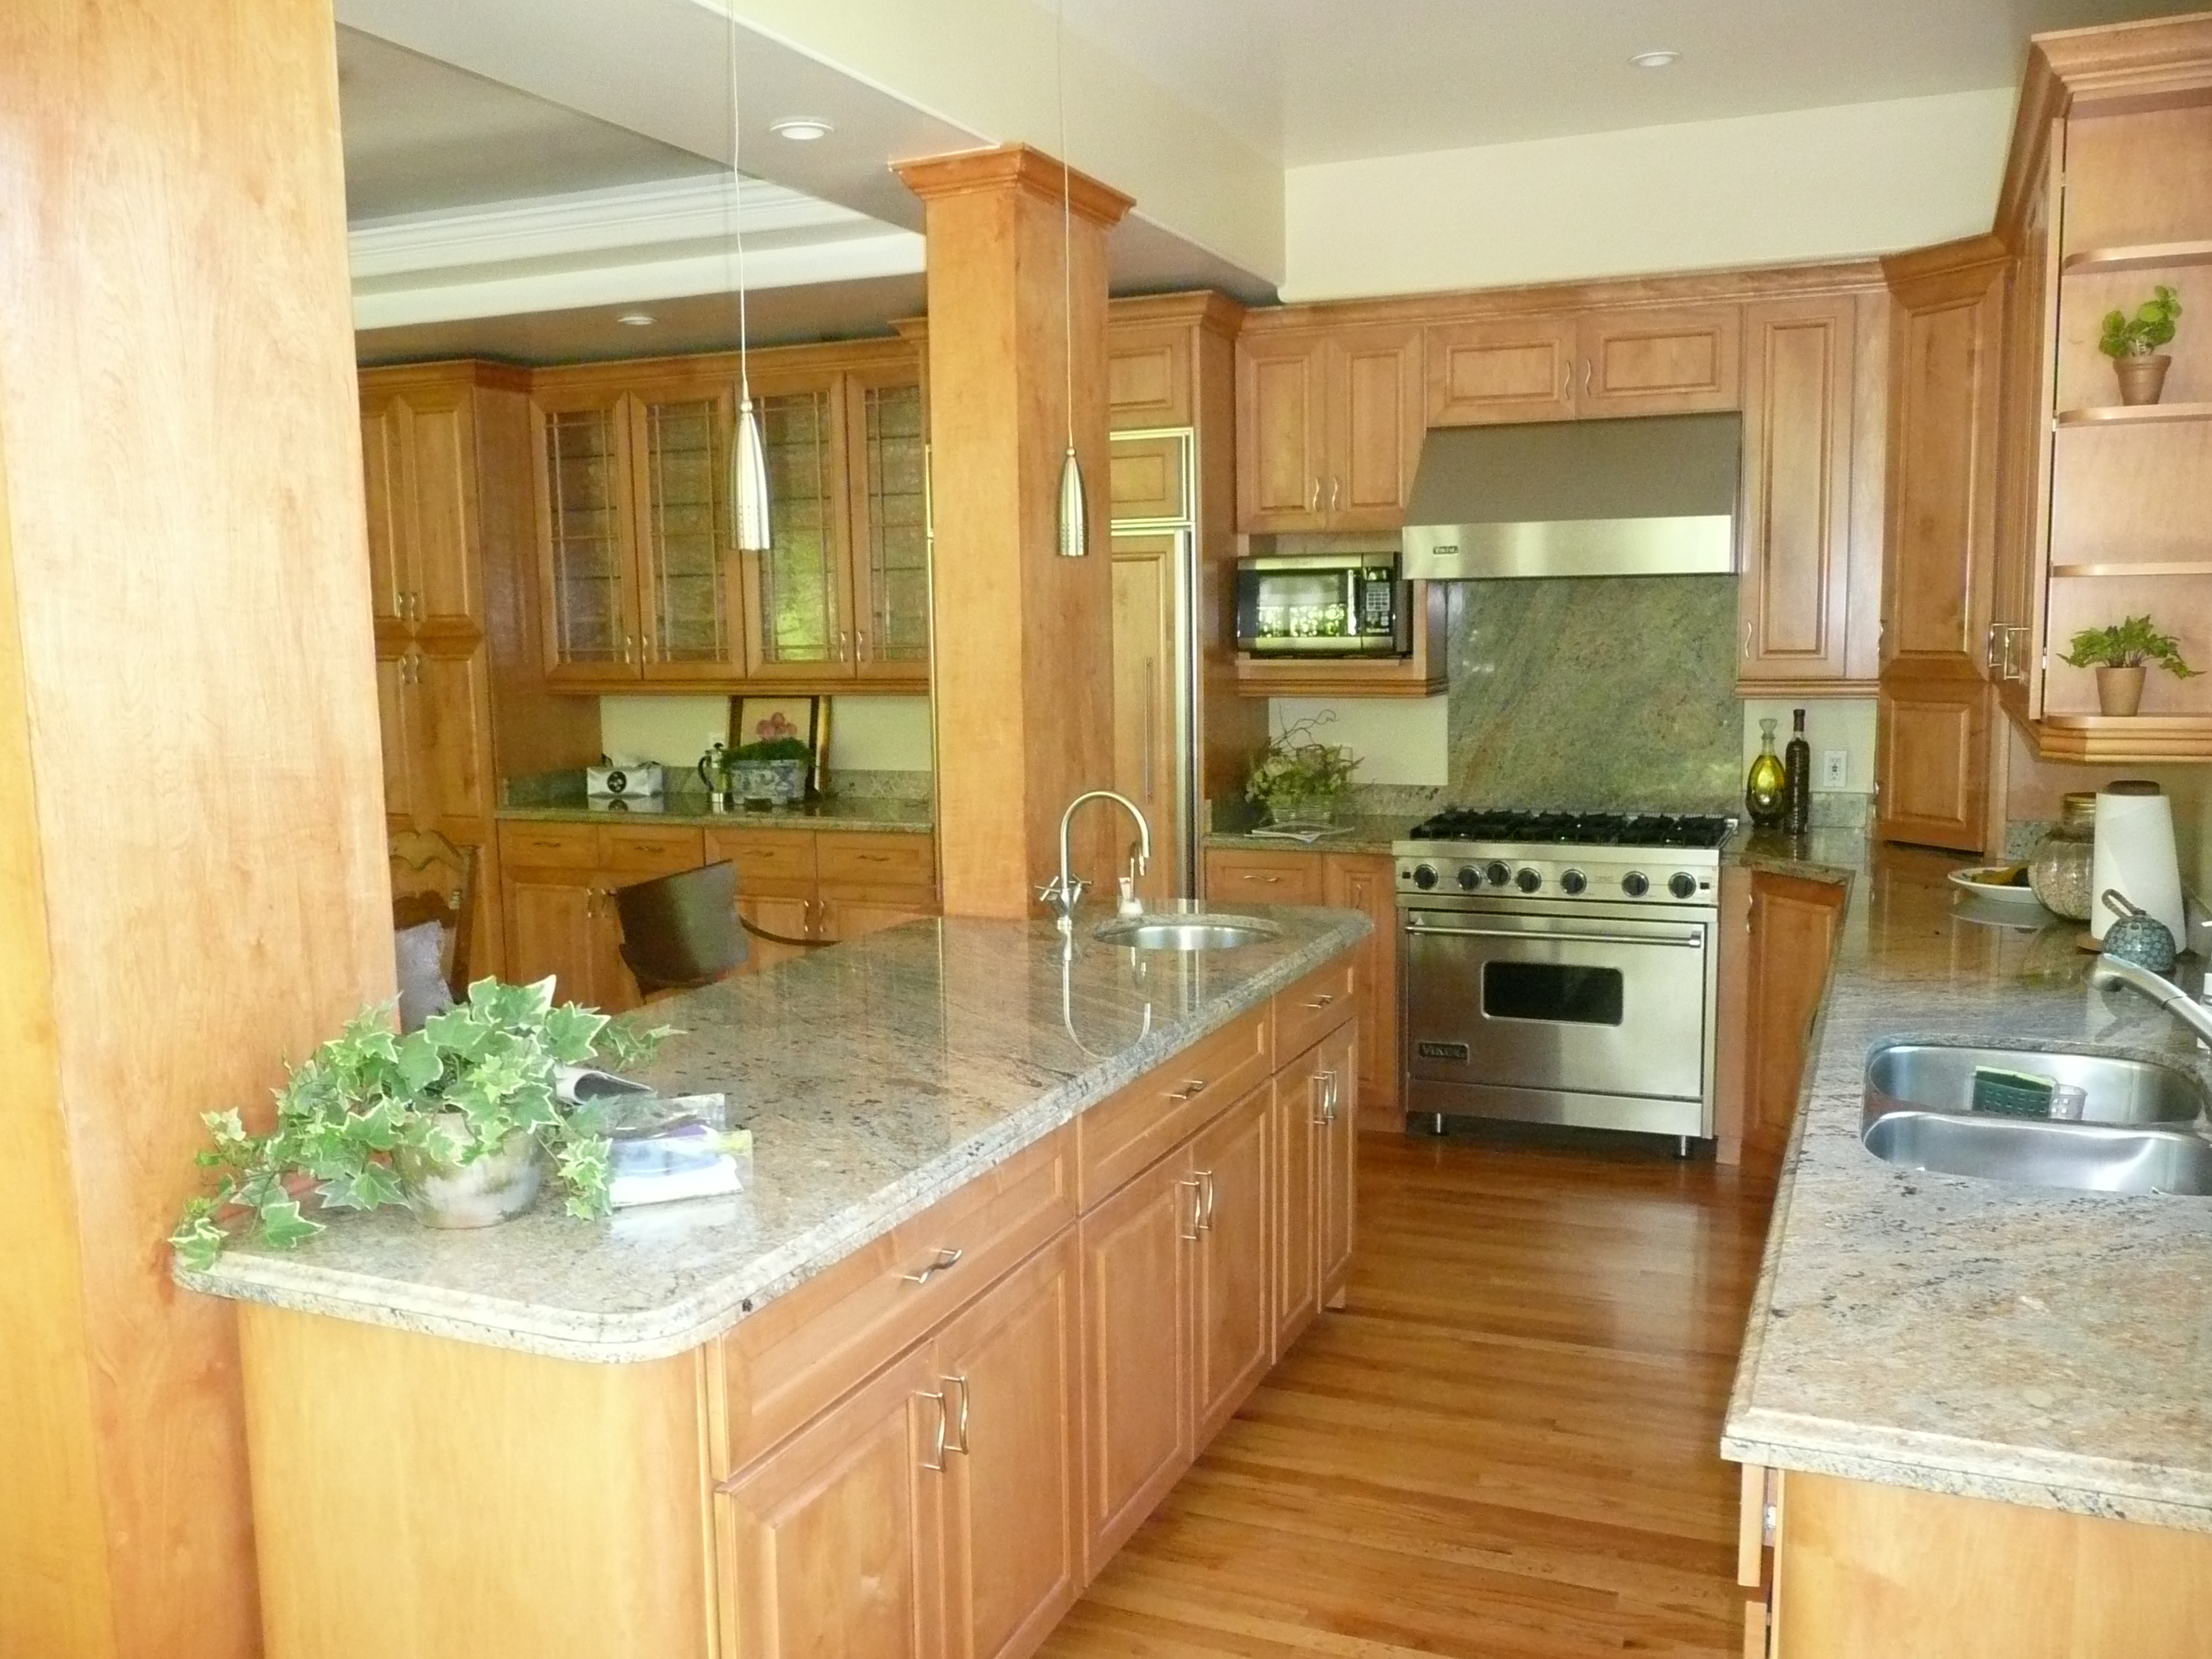 Poorly Designed Kitchen From Feng Shui Design